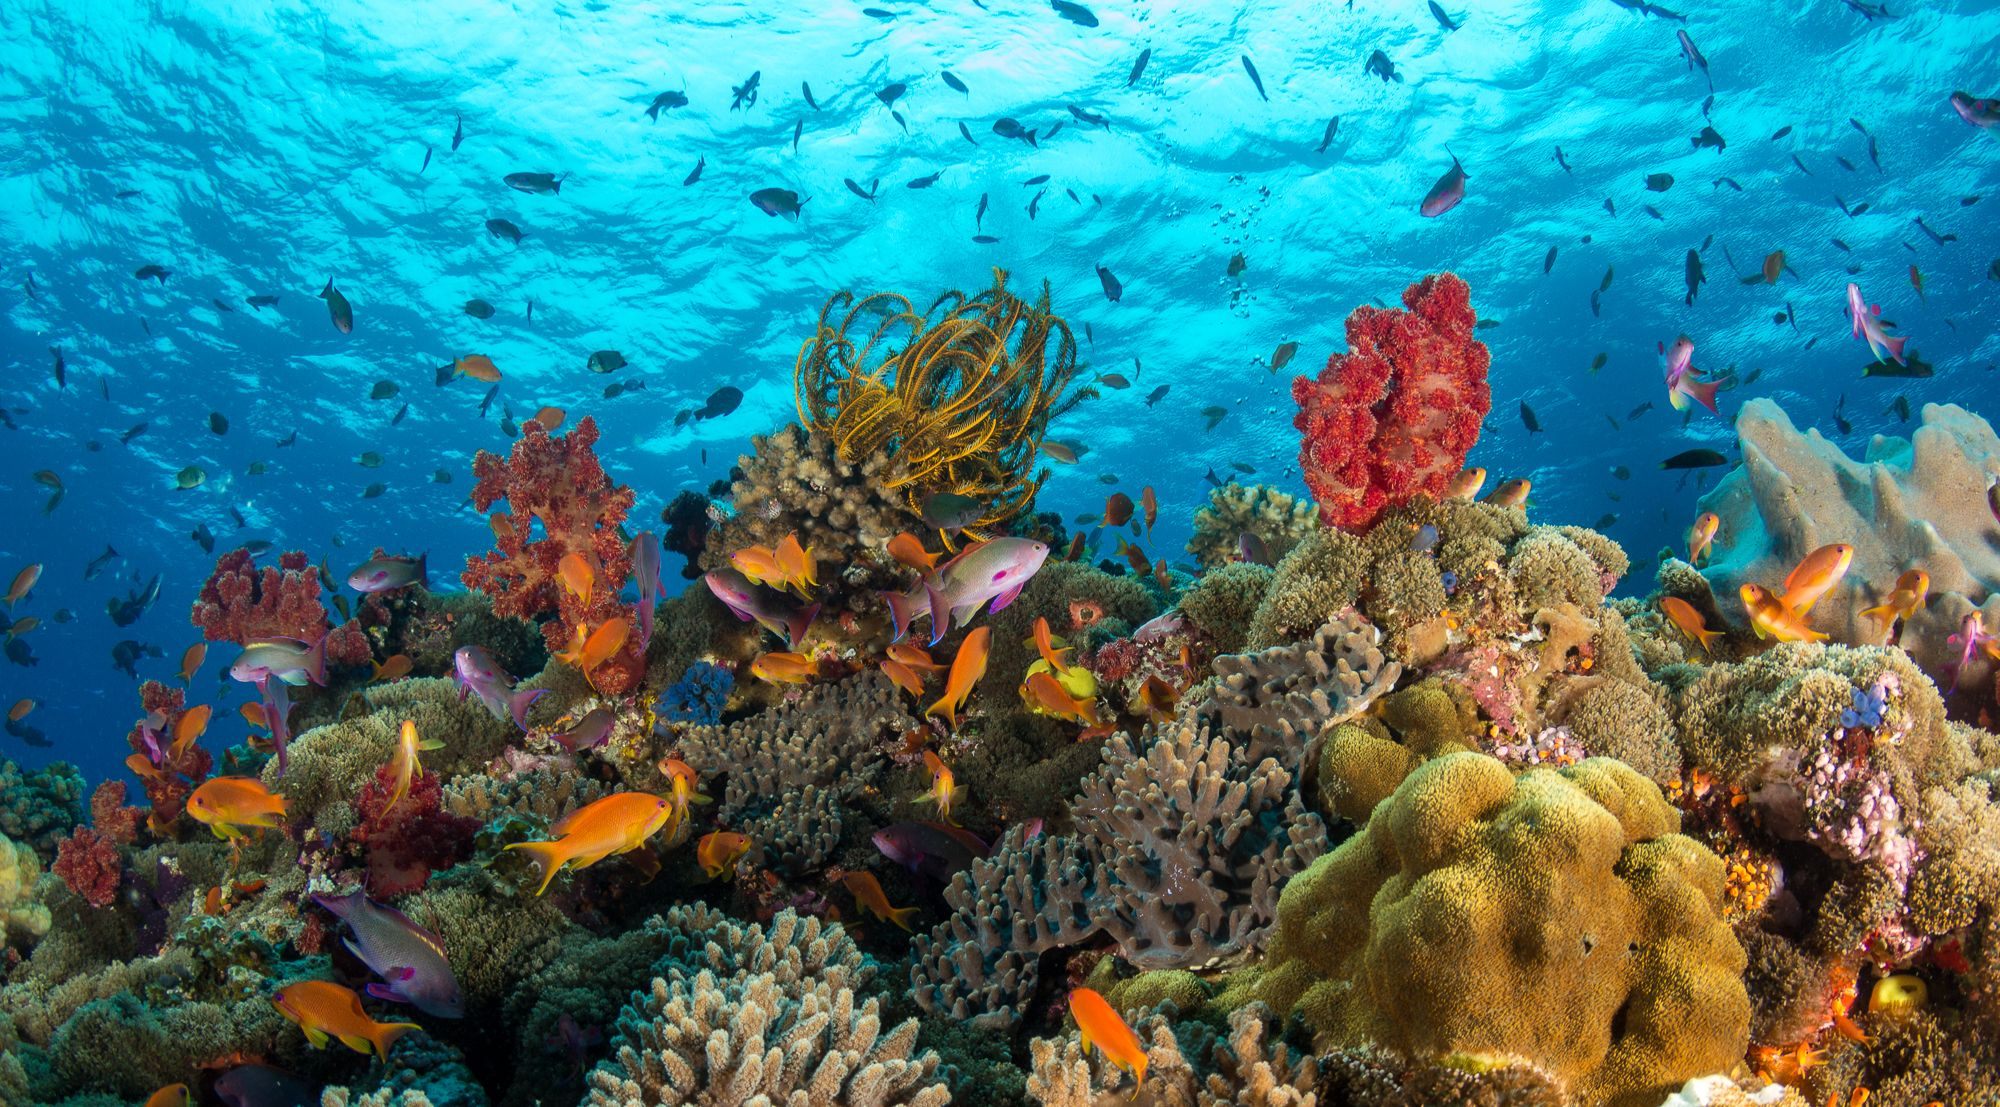 A colorful underwater image of an ocean's reef